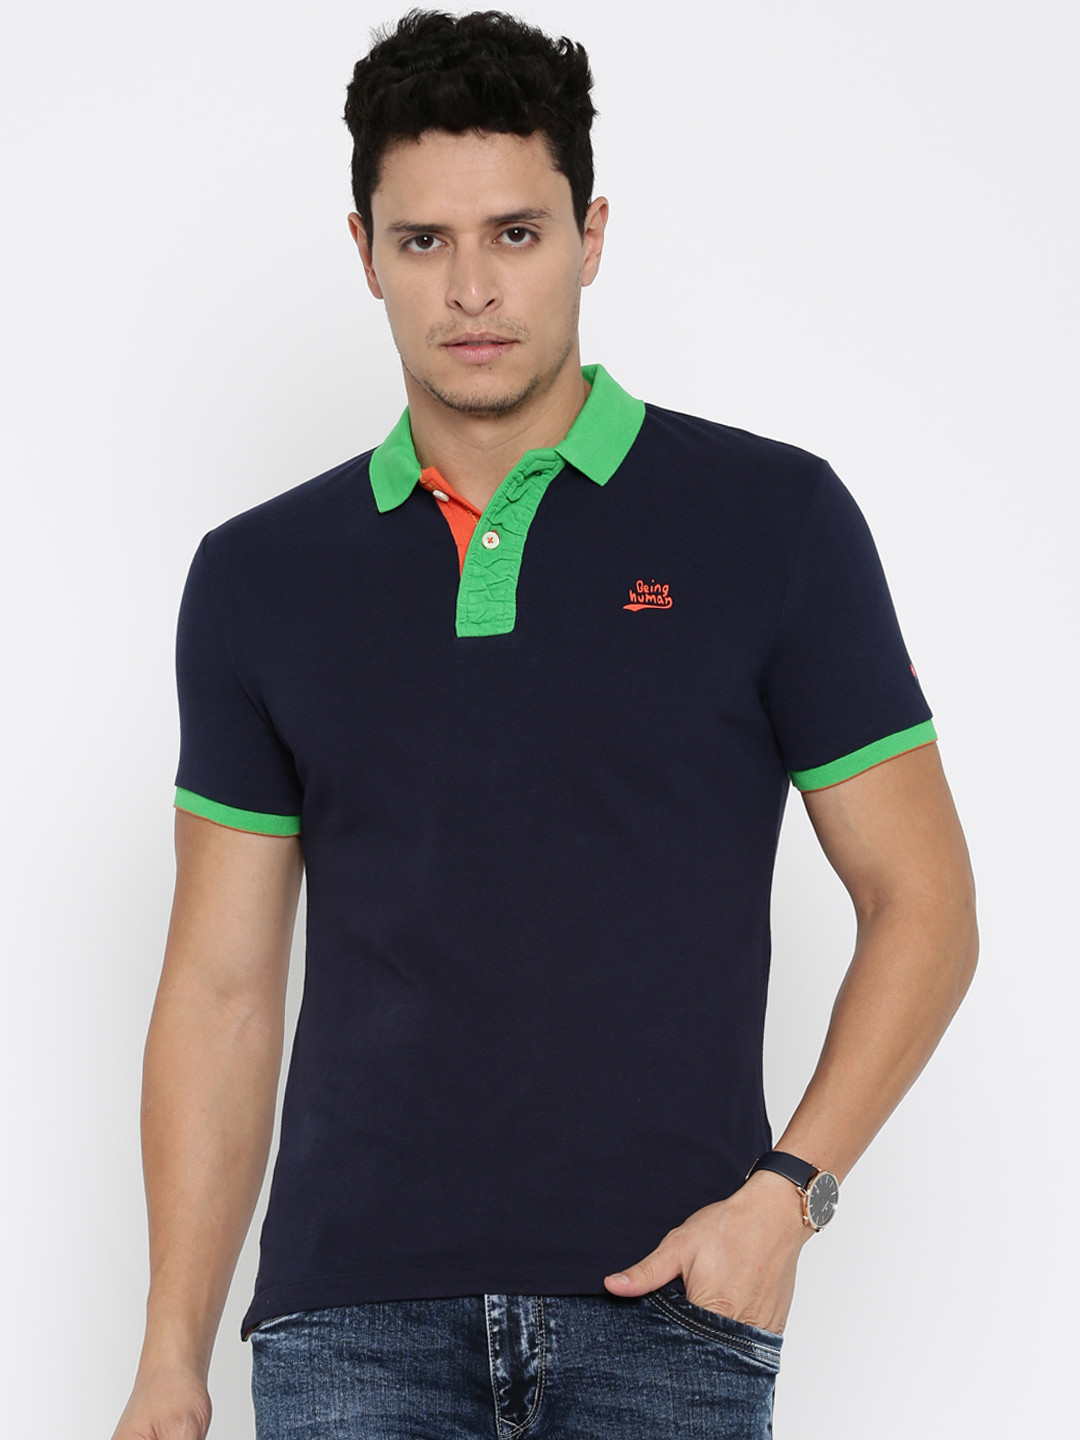 Being human solid navy cotton slim fit t shirt g3 for Navy slim fit shirt